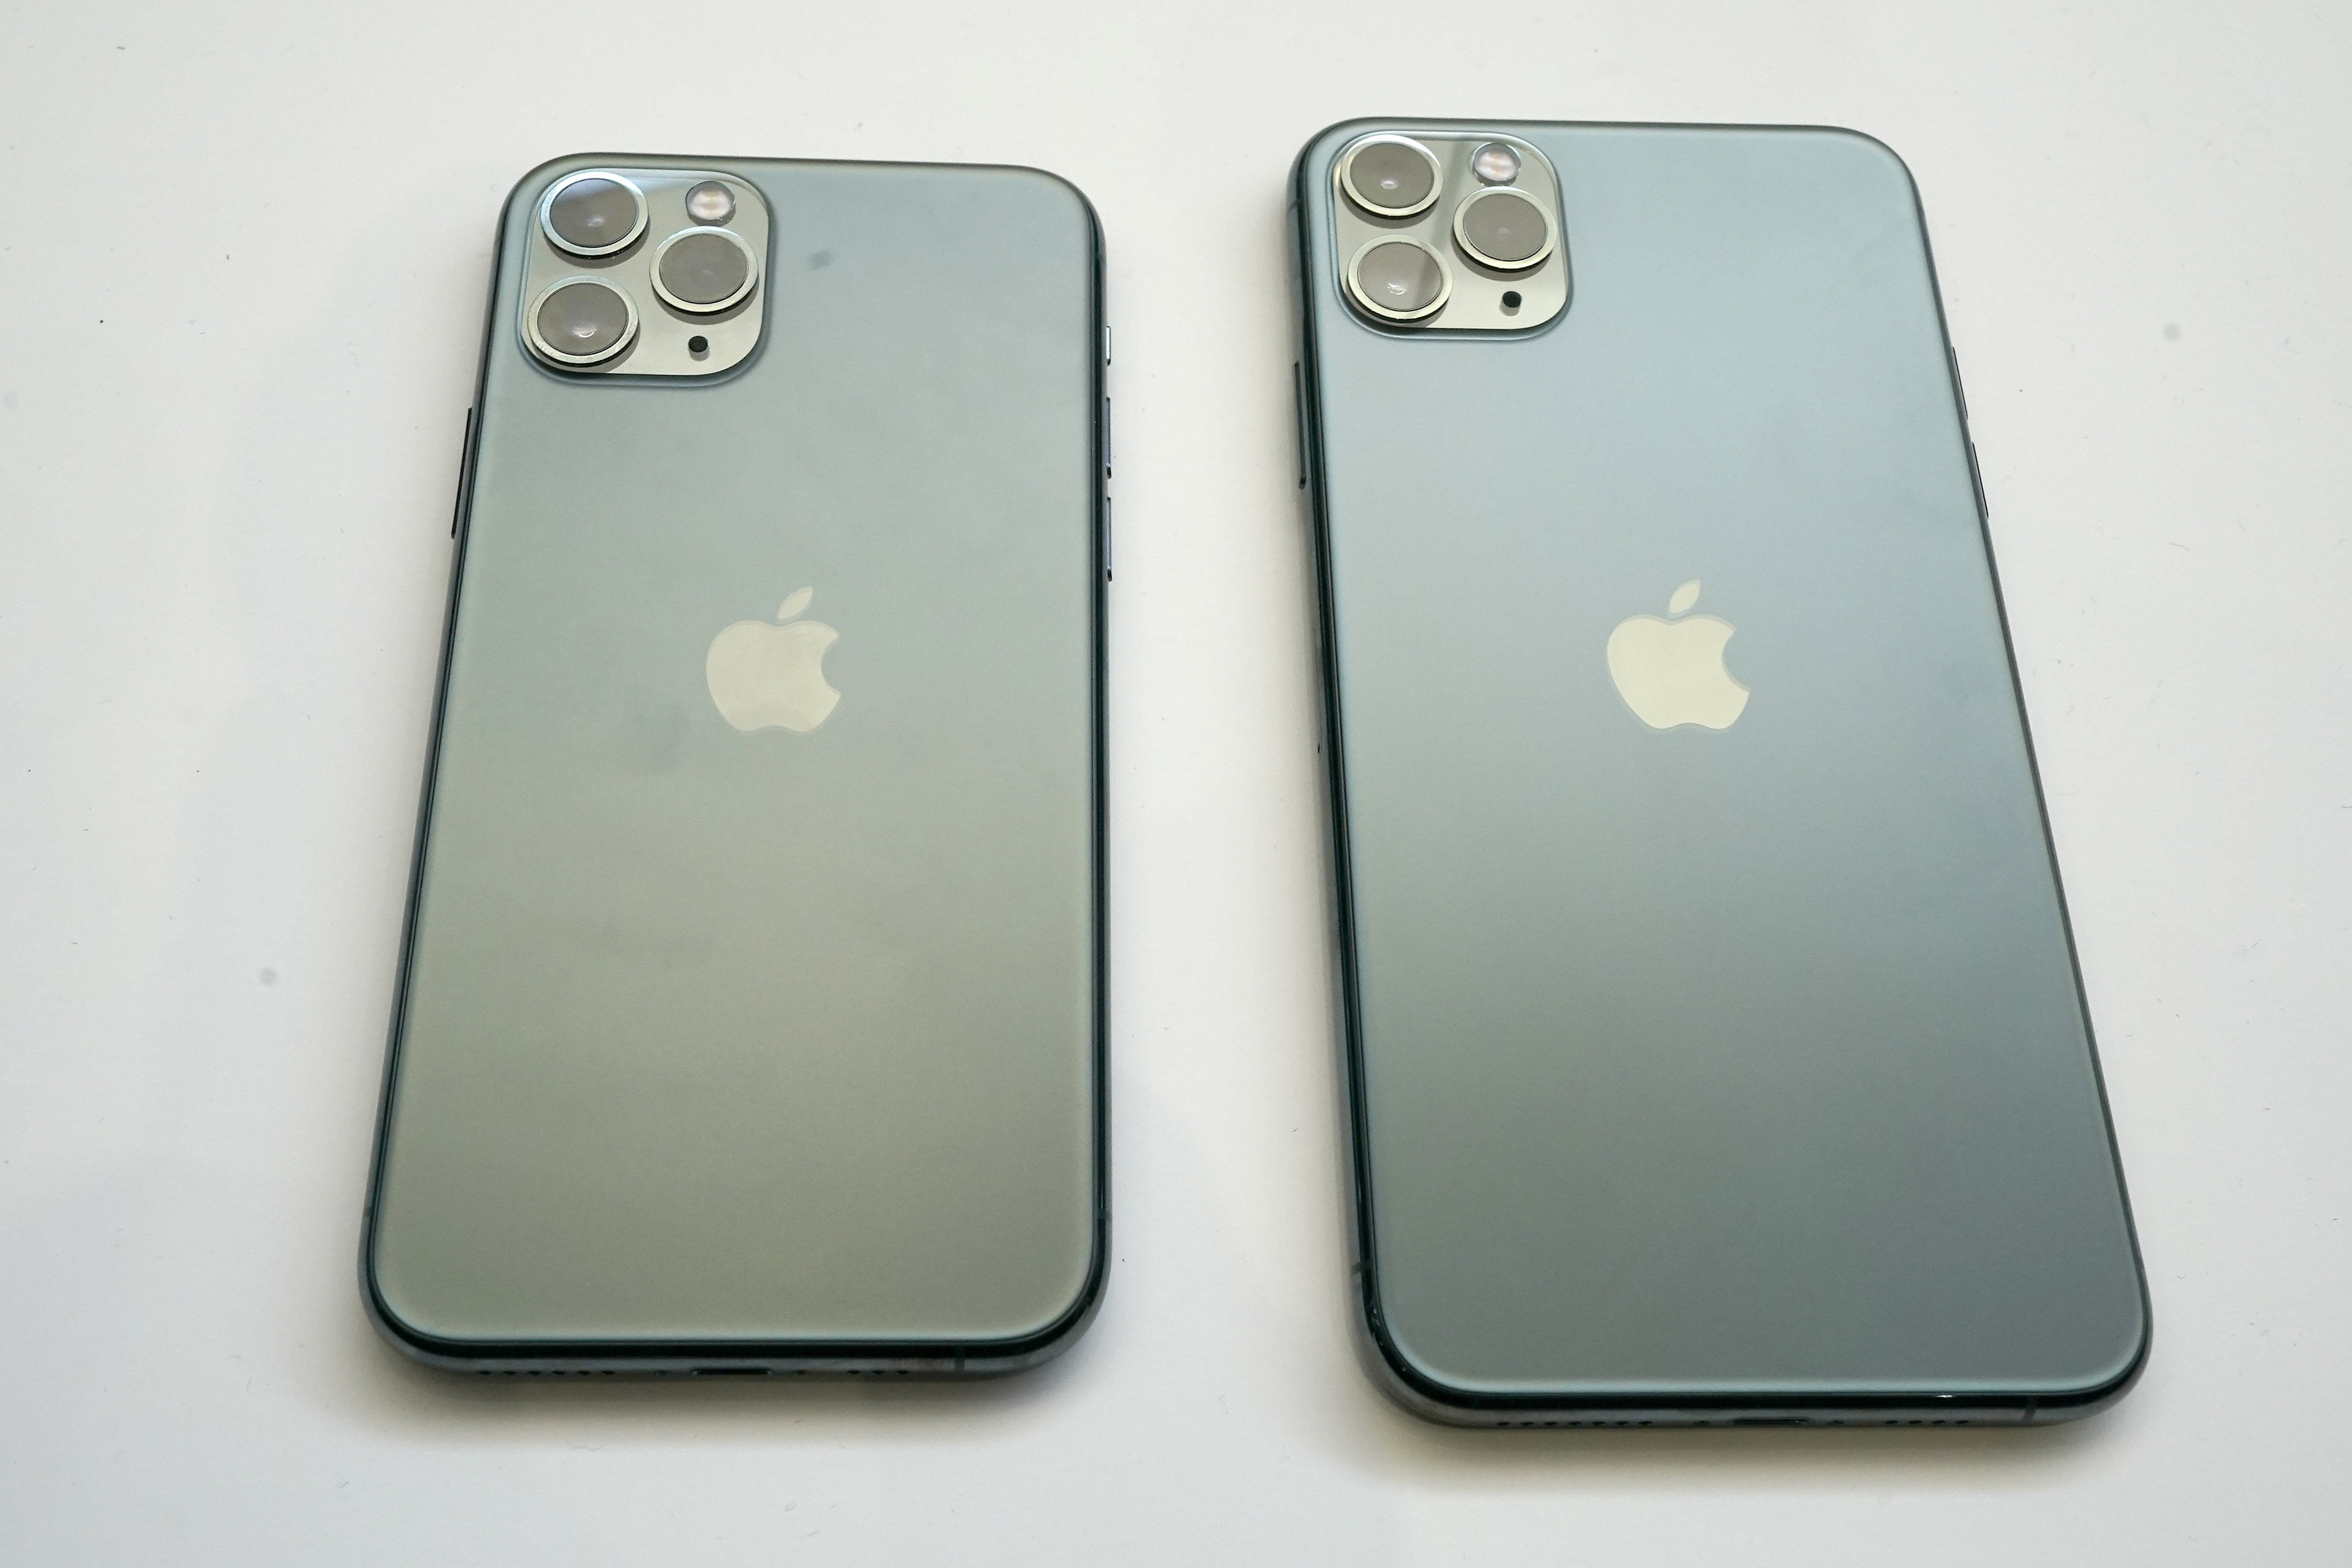 The design of the new iPhone is triggering people's trypophobia [Photo: AP Photo/Tony Avelar]